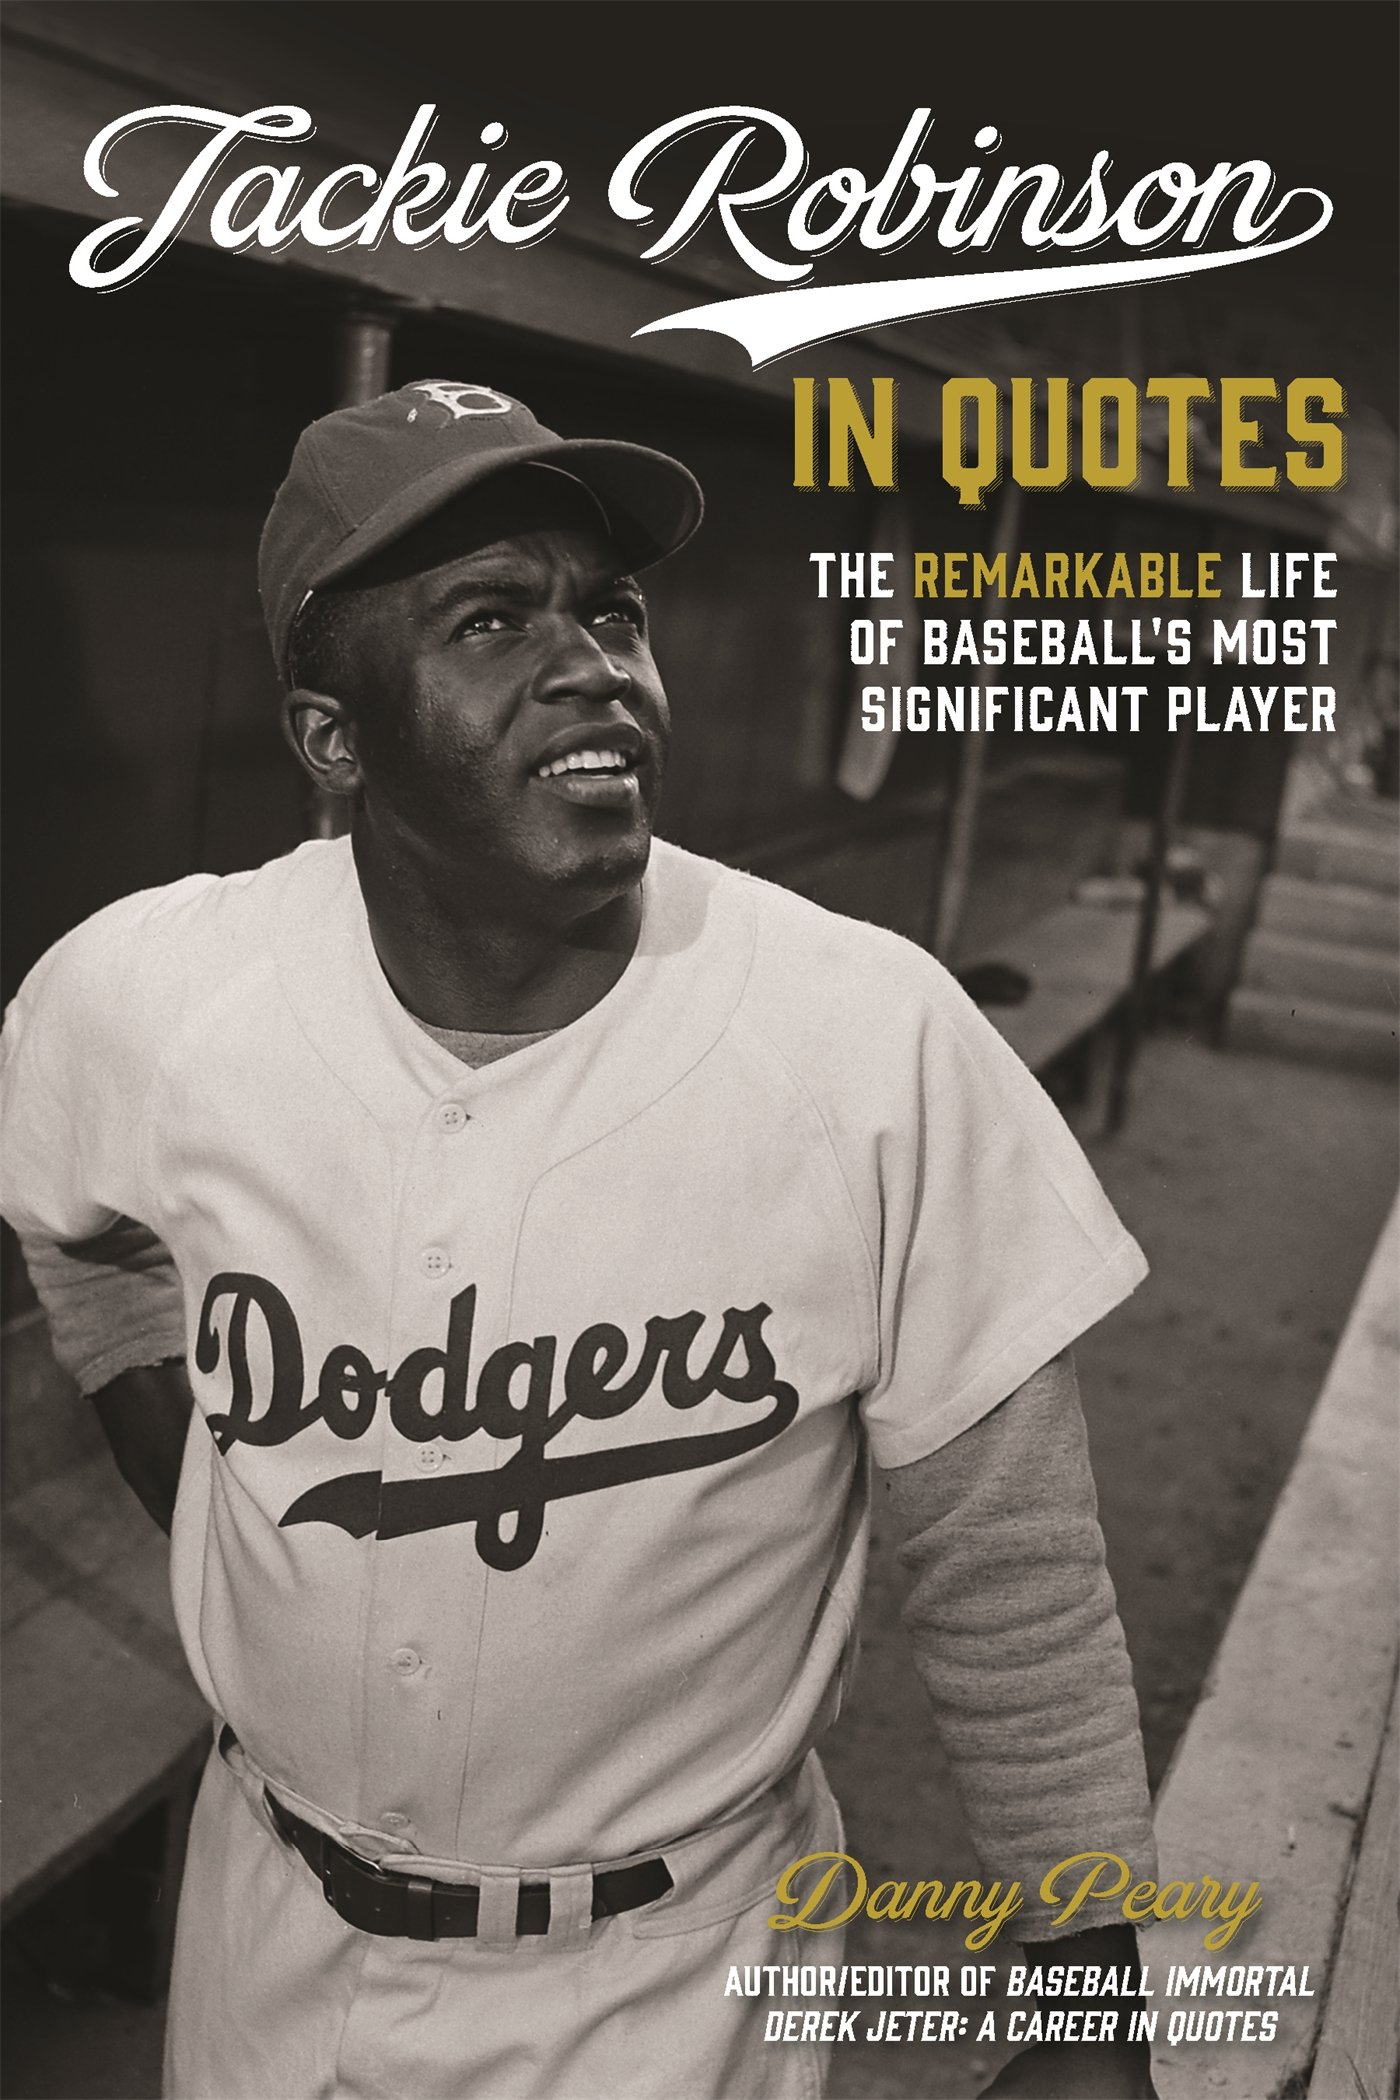 Jackie robinson in quotes the remarkable life of baseballs most